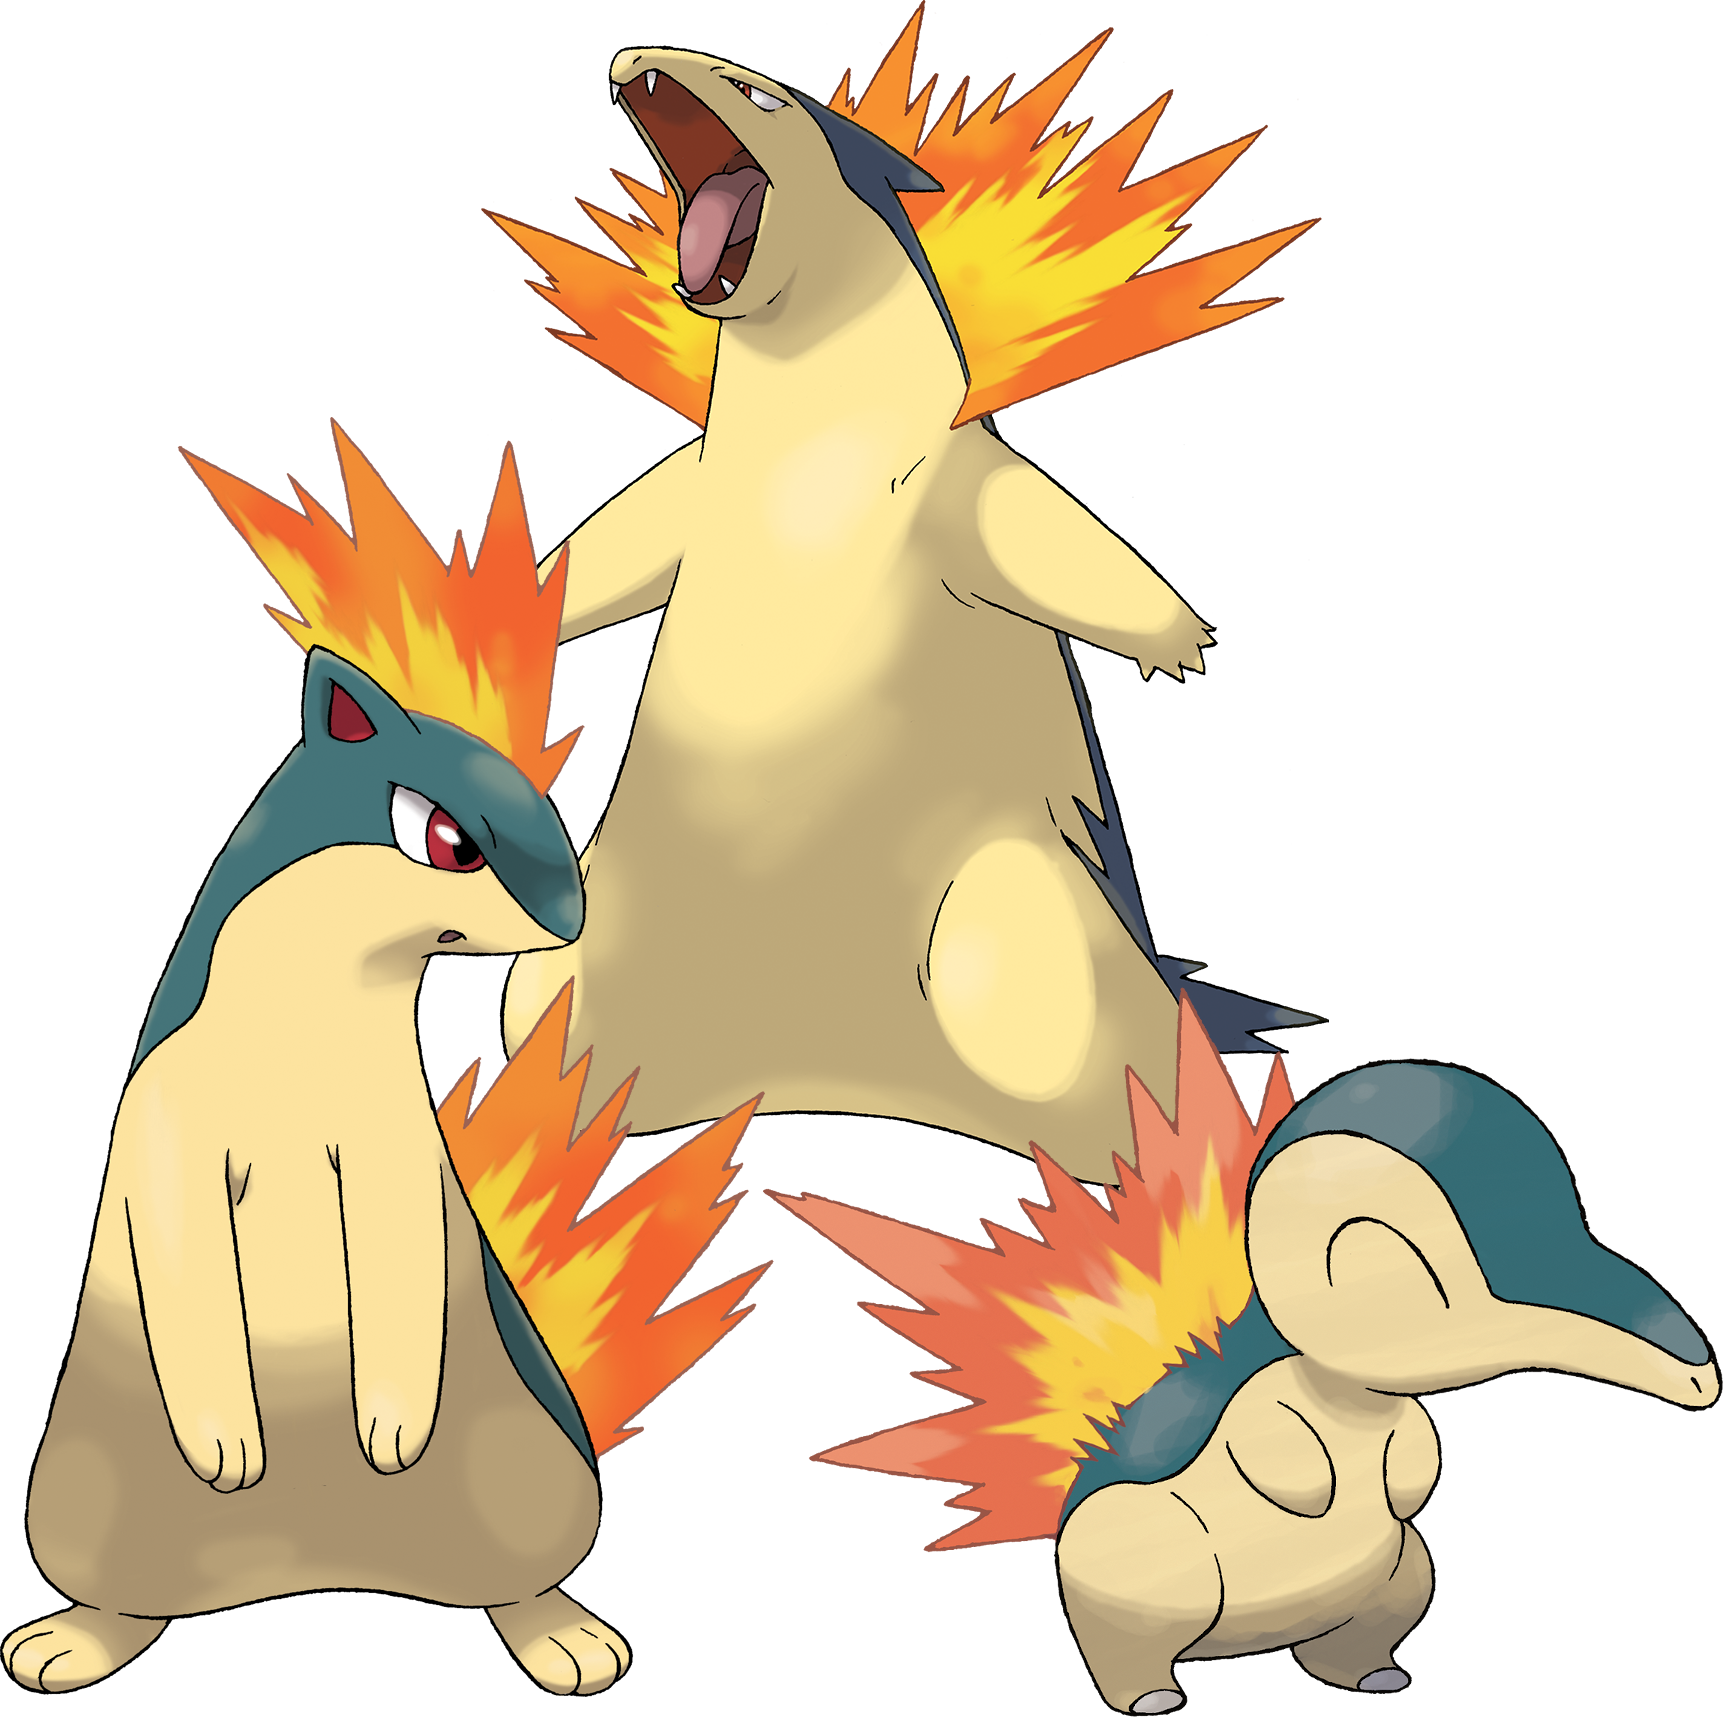 Cyndaquil, Quilava, and Typhlosion